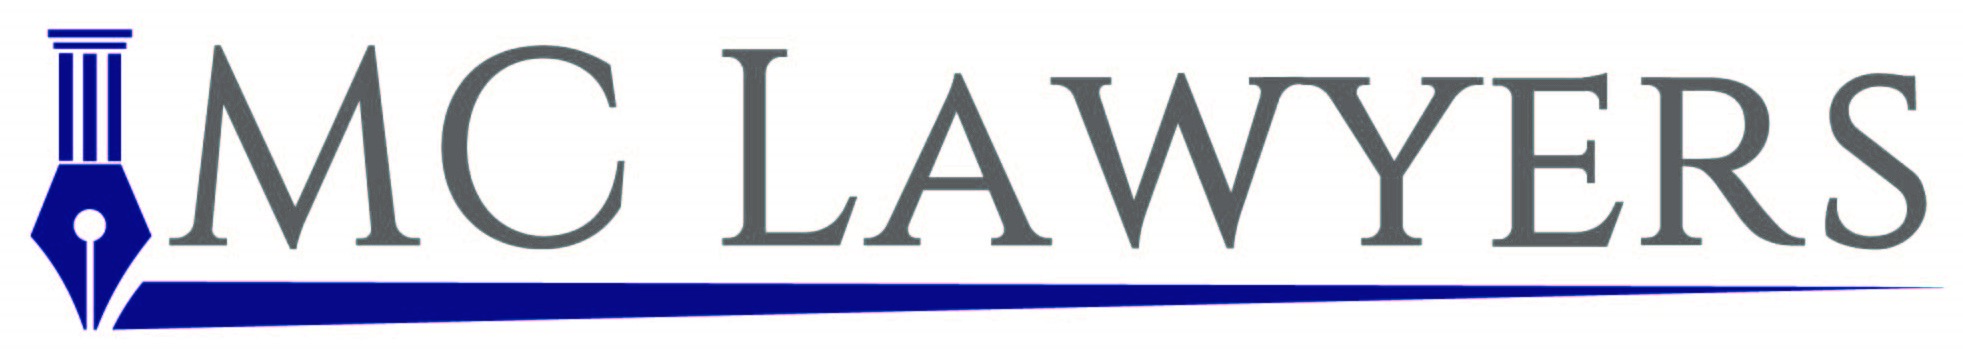 sydney lawyers. commercial lawyers. corporate lawyers. business lawyers. family lawyers sydney. law firms sydney. criminal lawyer sydney. immigration law sydney. company lawyer. sparke helmore sydney. divorce lawyers sydney. business solicitors. m&a law. employment lawyers sydney. commercial law firms. commercial property law. commercial litigation lawyer. criminal lawyers parramatta. top family lawyers sydney. corporate and business law. commercial lease lawyer. compensation lawyers sydney. personal injury lawyers sydney. family lawyers parramatta. hwle sydney. patent attorney sydney. best criminal lawyers sydney. migration lawyer sydney. law partners parramatta. strata lawyers sydney. family law firm sydney. commercial lawyer sydney. immigration lawyer parramatta. best family lawyer sydney. lawyers parramatta. defamation lawyers sydney. workers compensation lawyers sydney. best employment lawyers sydney. pro bono lawyers sydney. sydney barristers. solicitor sydney. construction lawyers sydney. criminal defence lawyers sydney. criminal law firms sydney. business lawyer sydney. criminal lawyers blacktown. top family law firms sydney. property lawyers sydney. traffic lawyers sydney. best divorce lawyers sydney. litigation lawyer sydney. solicitor campbelltown. tax lawyers sydney. top law firms sydney. campbelltown lawyers. best law firms in sydney. no win no fee lawyer sydney. best lawyers in sydney. criminal lawyer campbelltown. unfair dismissal lawyers sydney. blacktown lawyers. family lawyers north sydney. traffic lawyers parramatta. solicitors parramatta. conveyancing parramatta. criminal lawyer bankstown. solicitor blacktown. ip lawyer sydney. solicitor bankstown. family lawyer sydney cbd. law firms parramatta. business law near me. conveyancing solicitors sydney. conveyancing lawyer sydney. criminal solicitors sydney. trademark lawyer sydney. will lawyers sydney. commercial lawyer parramatta. lawyer bankstown. intellectual property lawyers sydney. solicitor hornsby. criminal lawyers in penrith. commerce lawyer. legal firms sydney. lawyers hornsby. probate lawyers sydney. drug lawyer sydney. strathfield lawyers. international business law. corporate attorney. corporate law firms. business law attorney. commercial solicitor. commercial litigation attorney. commercial real estate lawyer. business law firm. law company. securities lawyer. commercial real estate attorney. corporate lawyer near me. Sydney Commercial Lawyers. Sydney Lawyers. Commercial Lawyers in Sydney. Corporate Lawyers Sydney. Sydney Corporate Lawyers. MC Lawyers. MC Lawyers & Advisers.